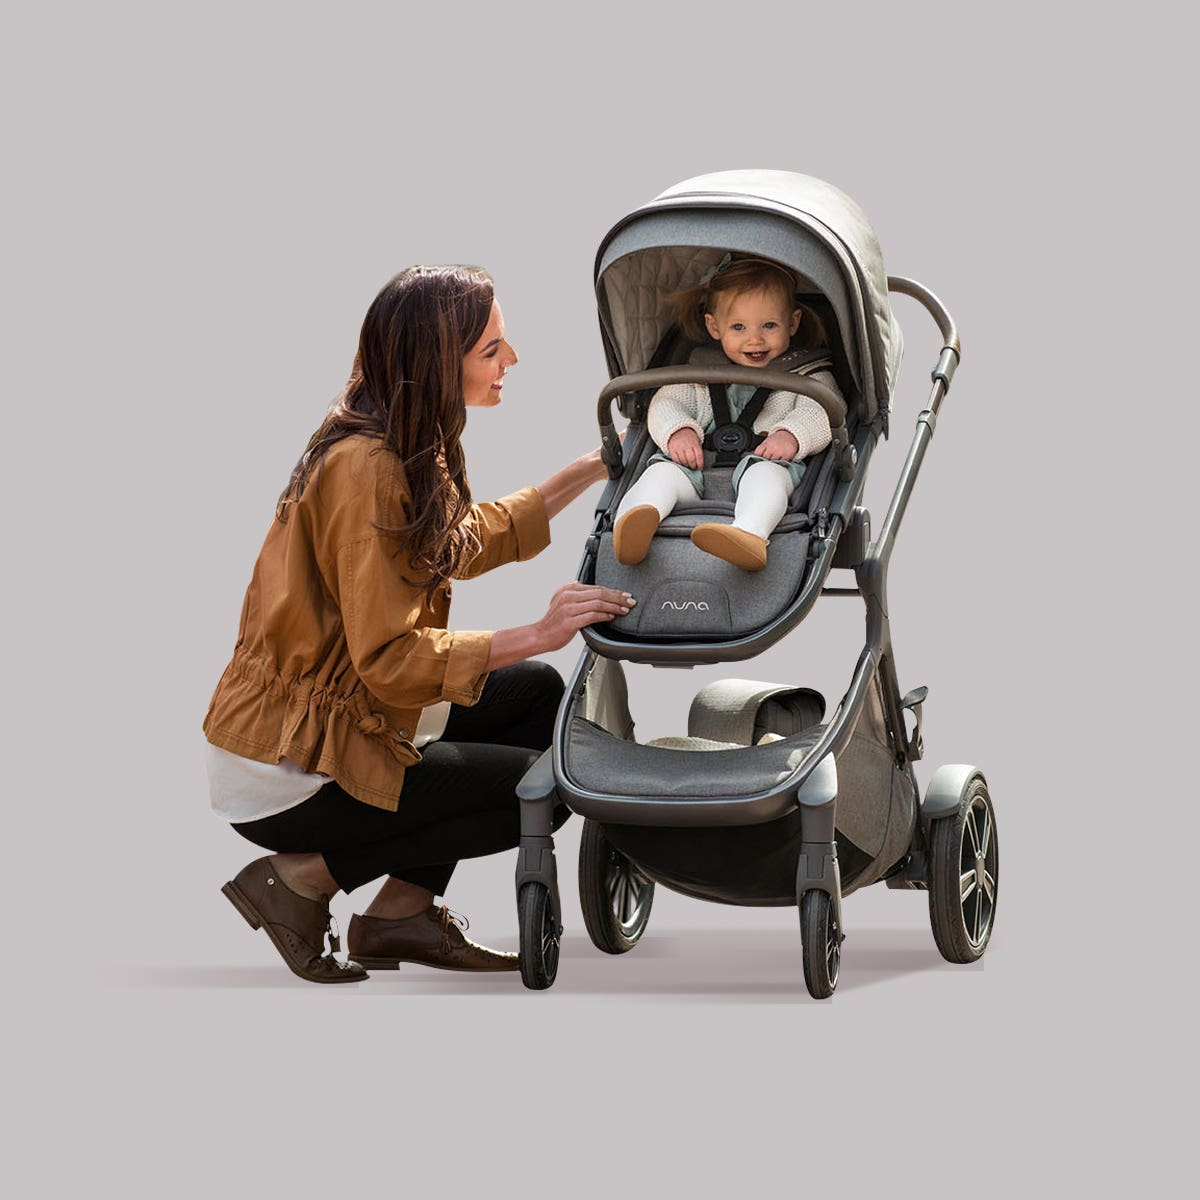 Woman kneeling in front of Nuna stroller with baby